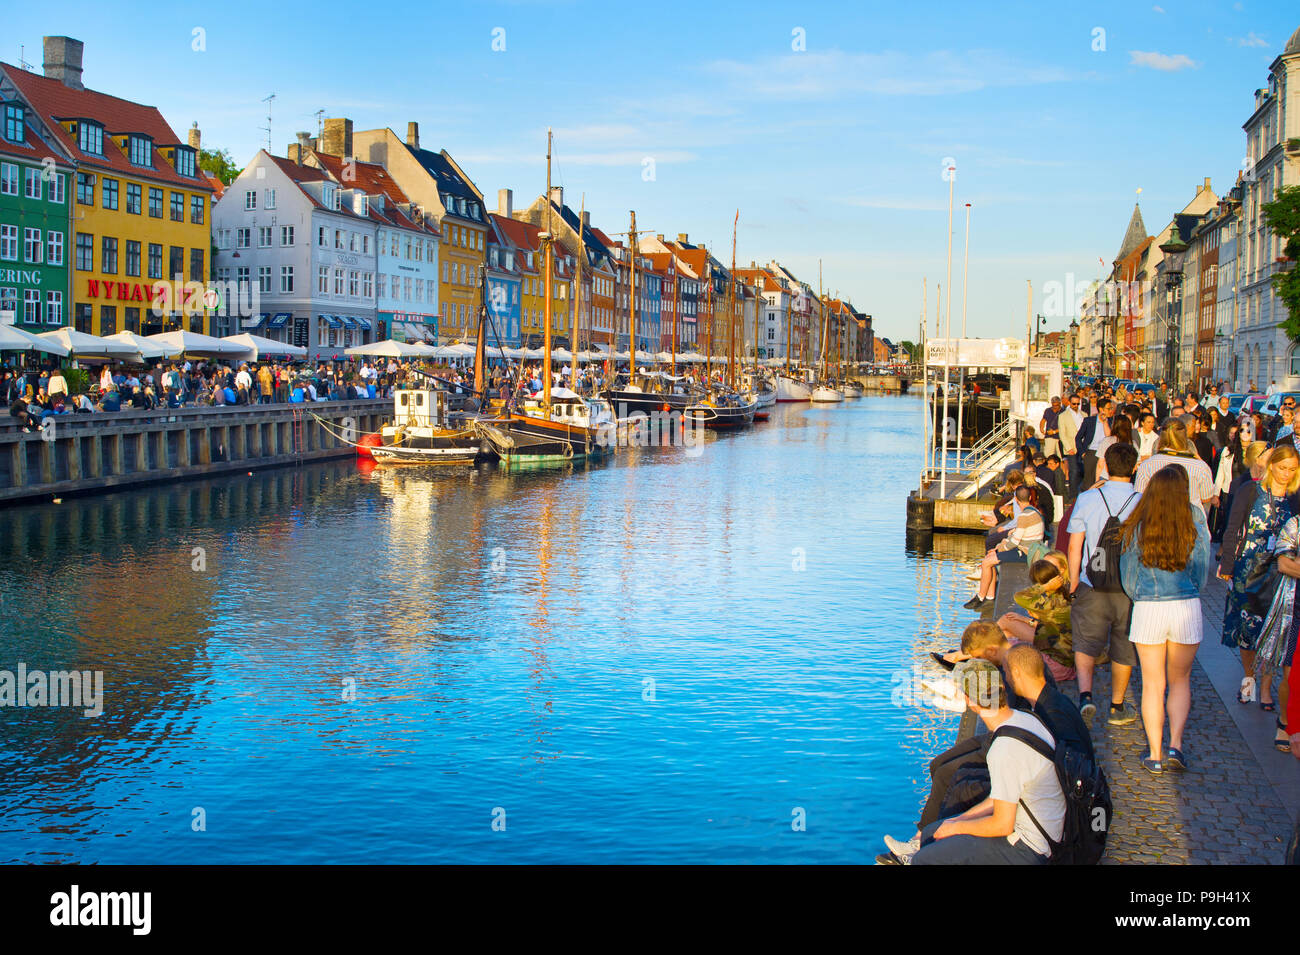 COPENHAGEN, DENMARK - JUNE 16, 2018: Tourists at Nyhavn district  - is one of the most famous landmark in Copenhagen - Stock Image